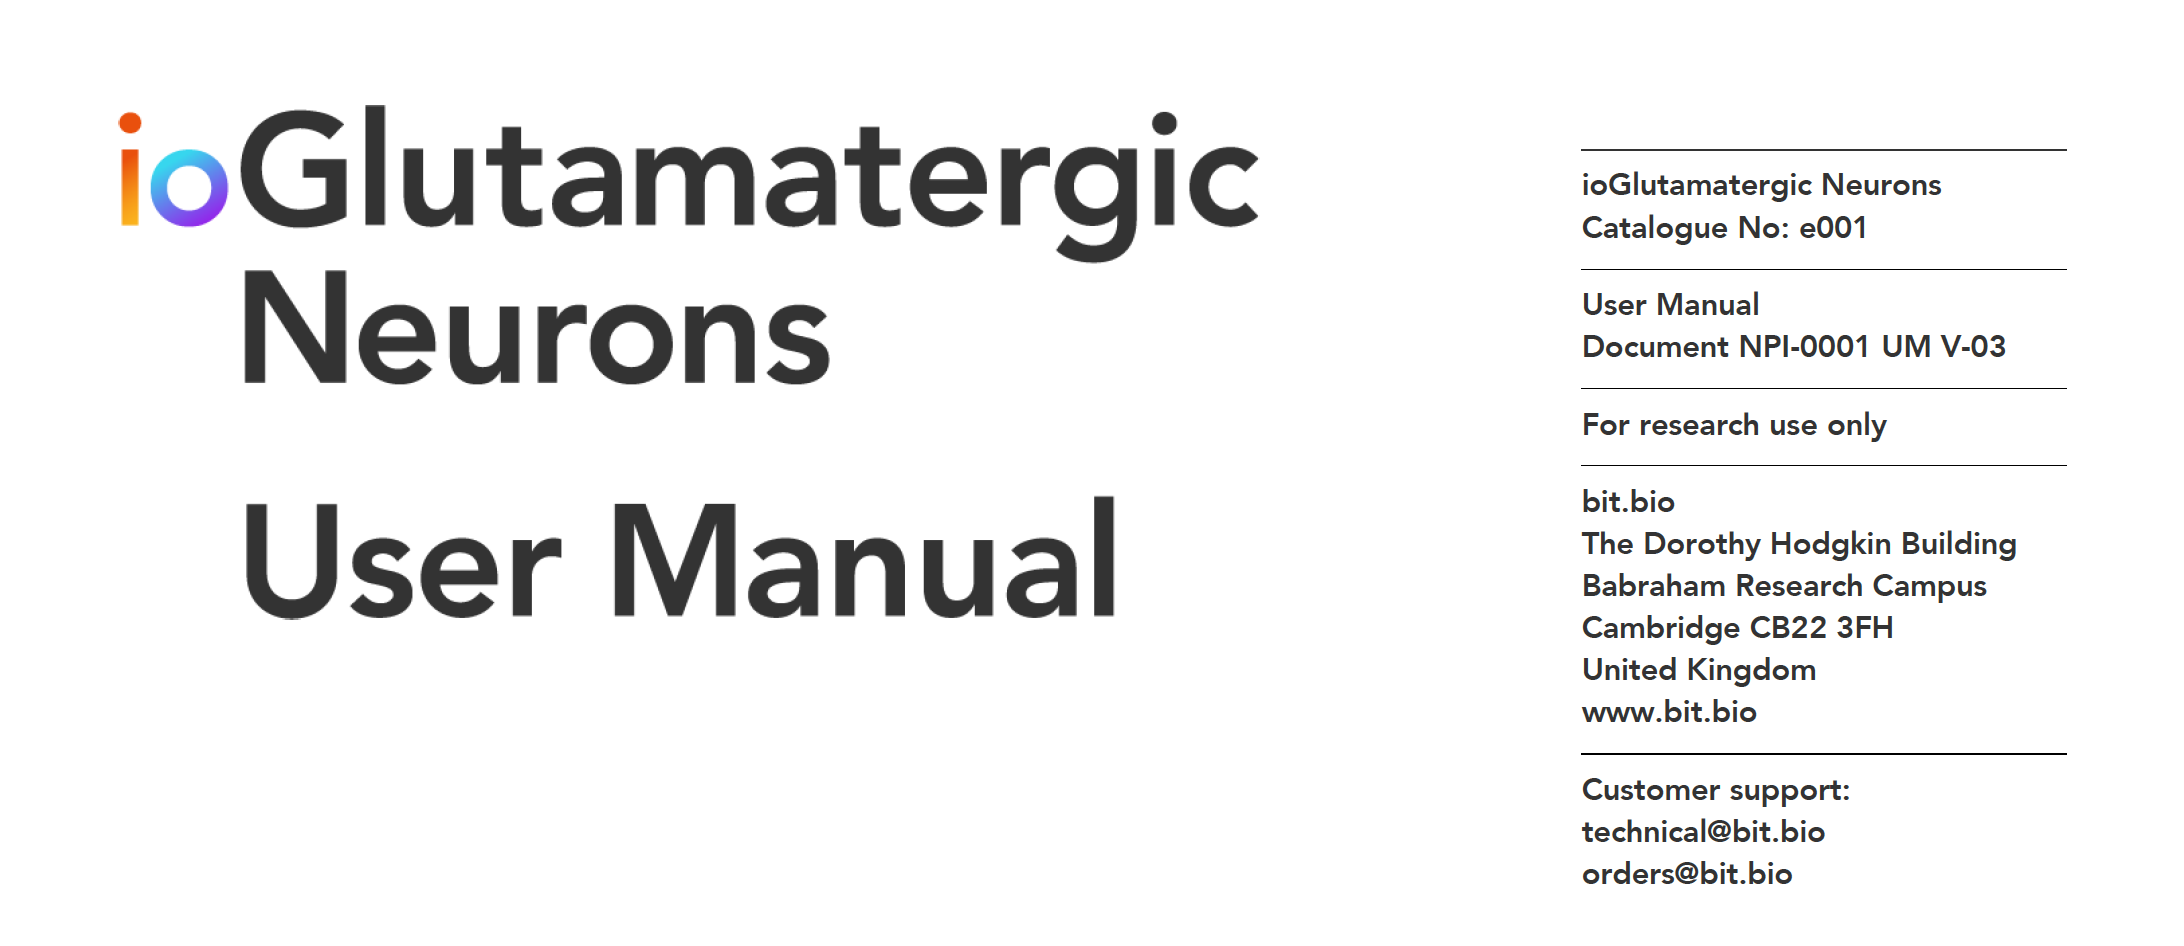 ioGlutamatergic Neurons user manual front cover